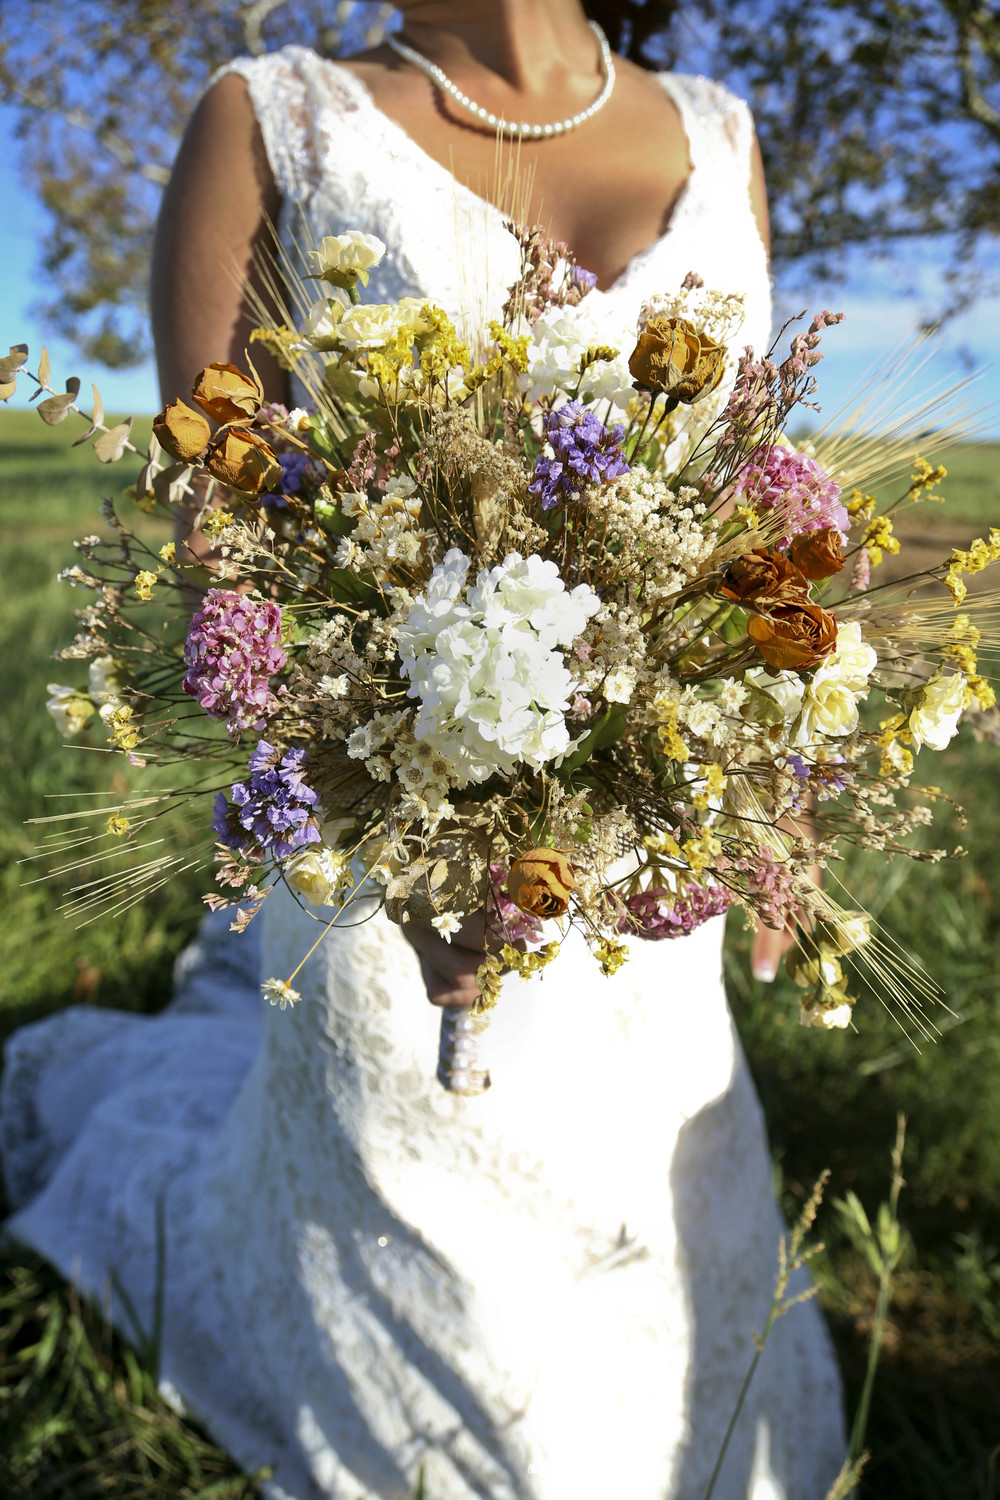 Fall Country Rustic Wedding Dried Floral Bouquet   Morgan County Georgia